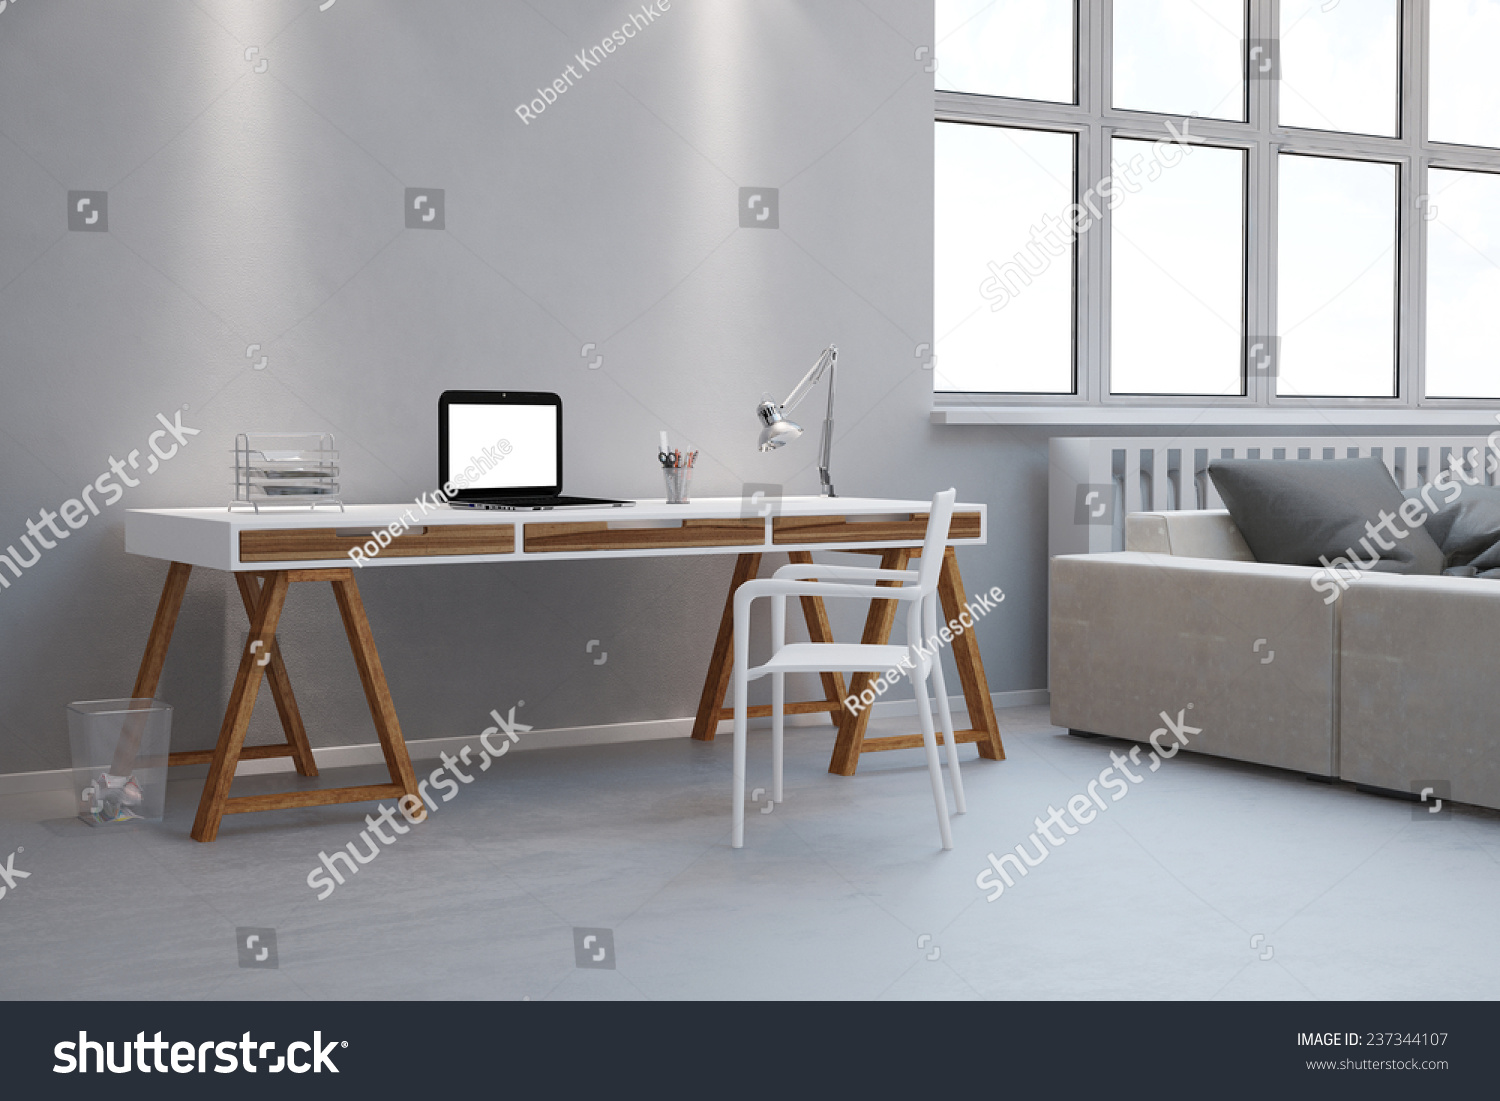 Small Desk As Home Office With Laptop Computer In A Living Room (3D  Rendering) Part 81